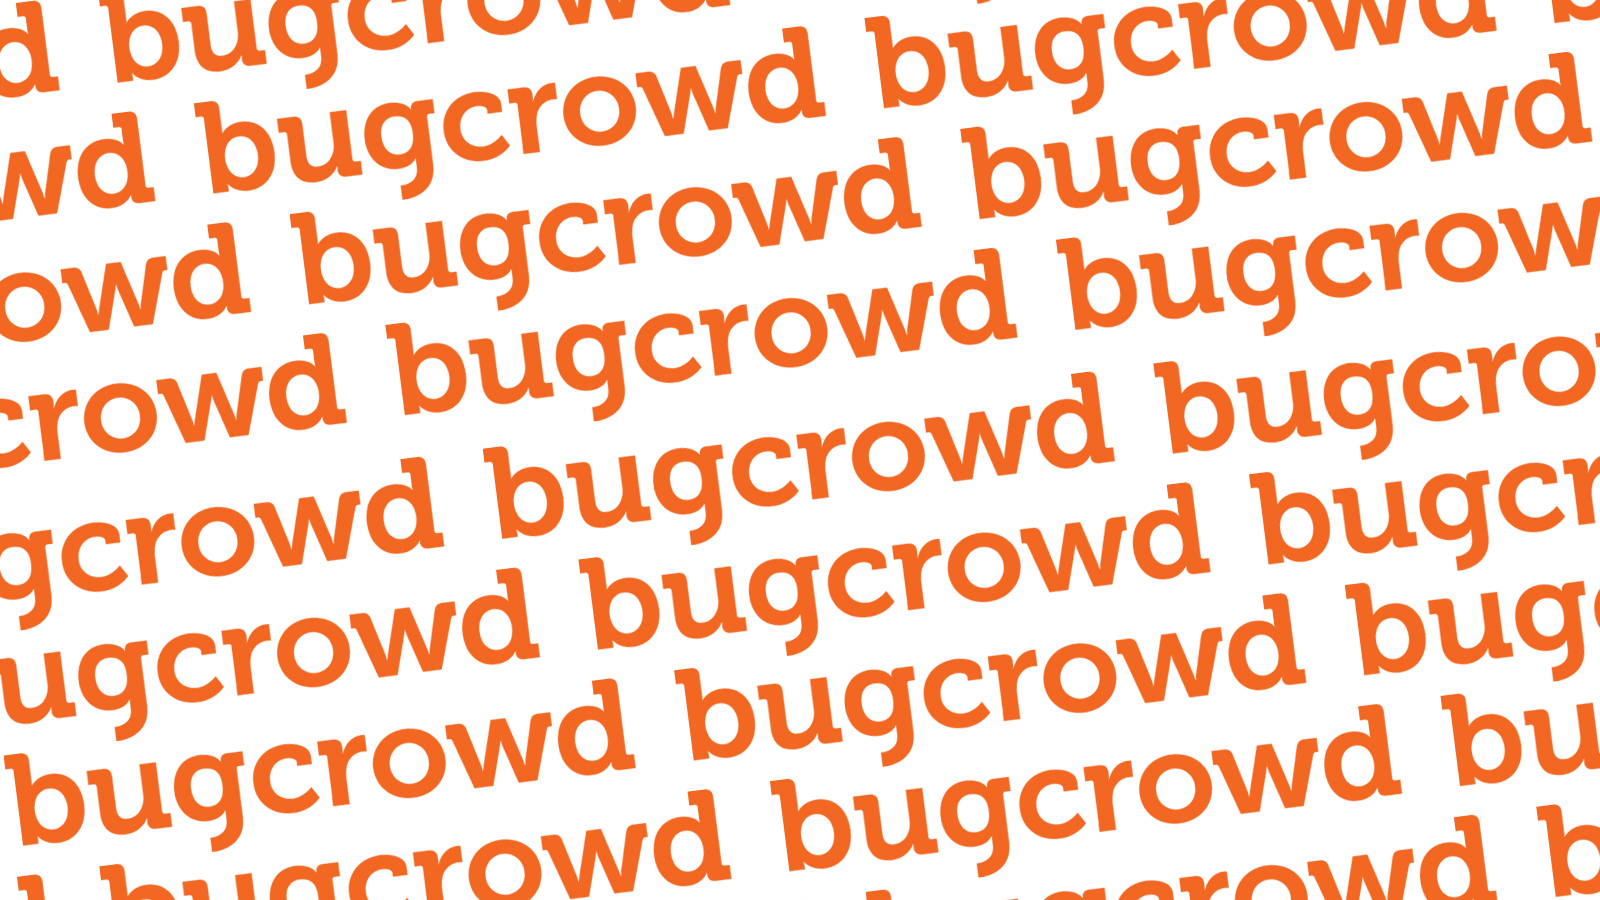 A look at crowdsource security platform Bugcrowd (plus advice on how to get hired there)